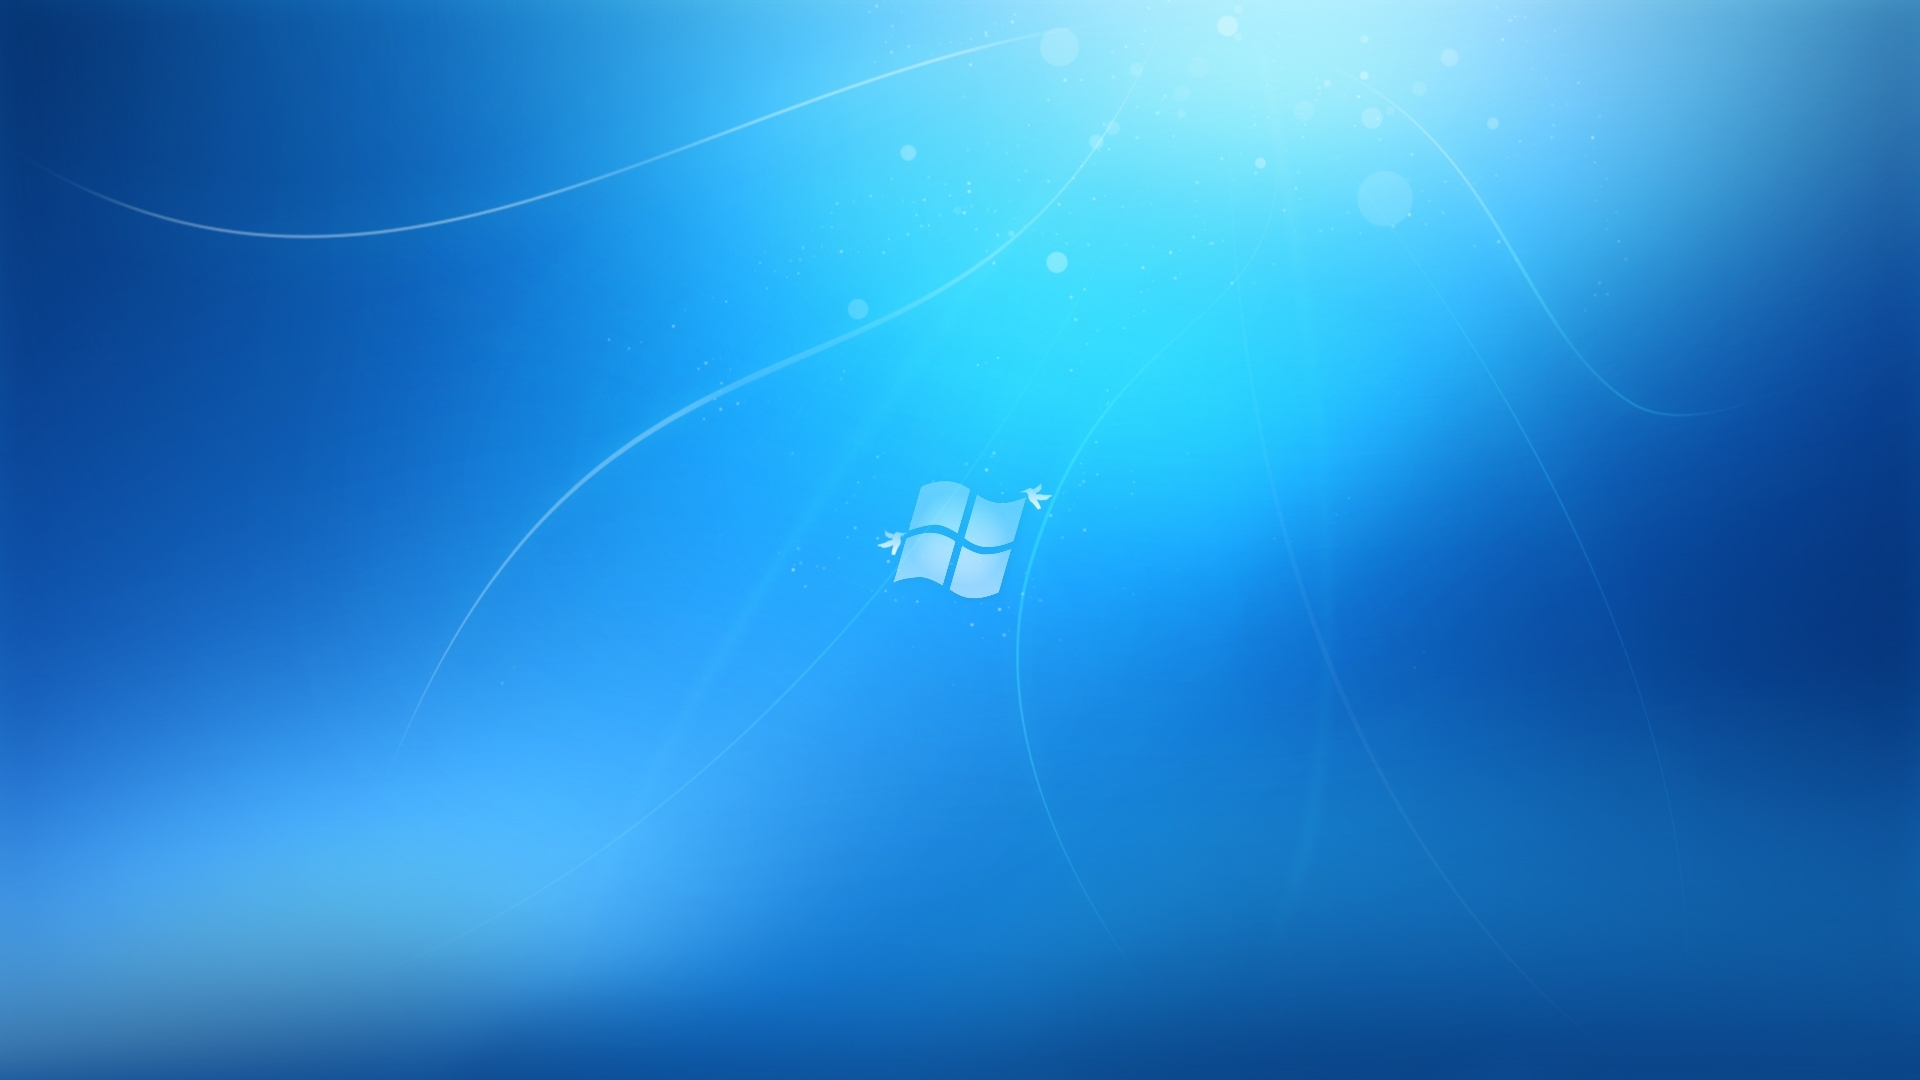 windows 7 blue 1080p hd wallpapers | hd wallpapers | id #7179